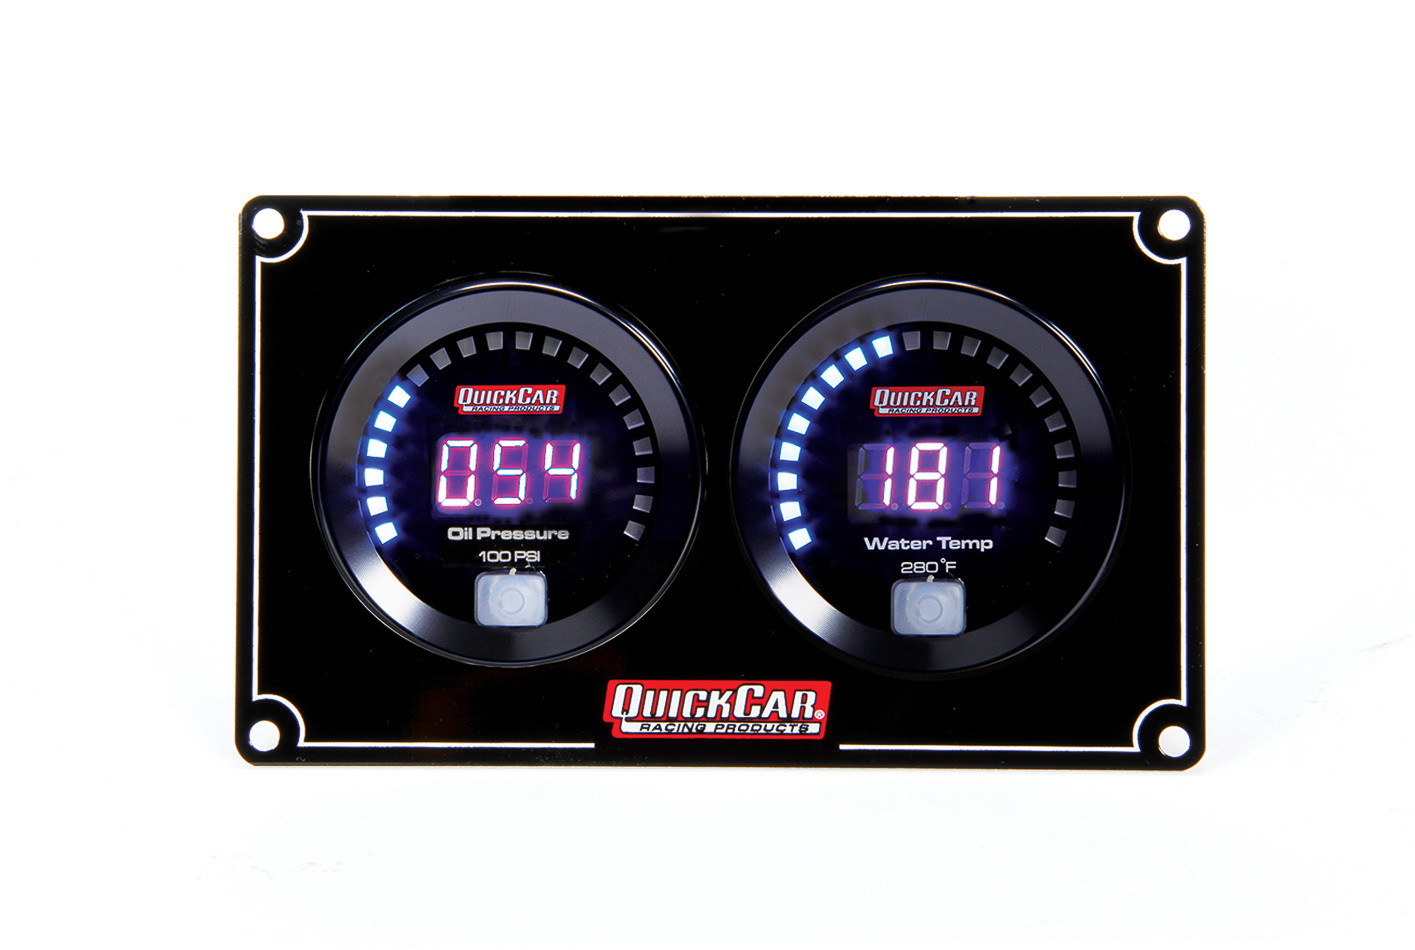 QuickCar 67-2001 Gauge Panel Assembly, Digital, Oil Pressure / Water Temperature, Black Face, Kit